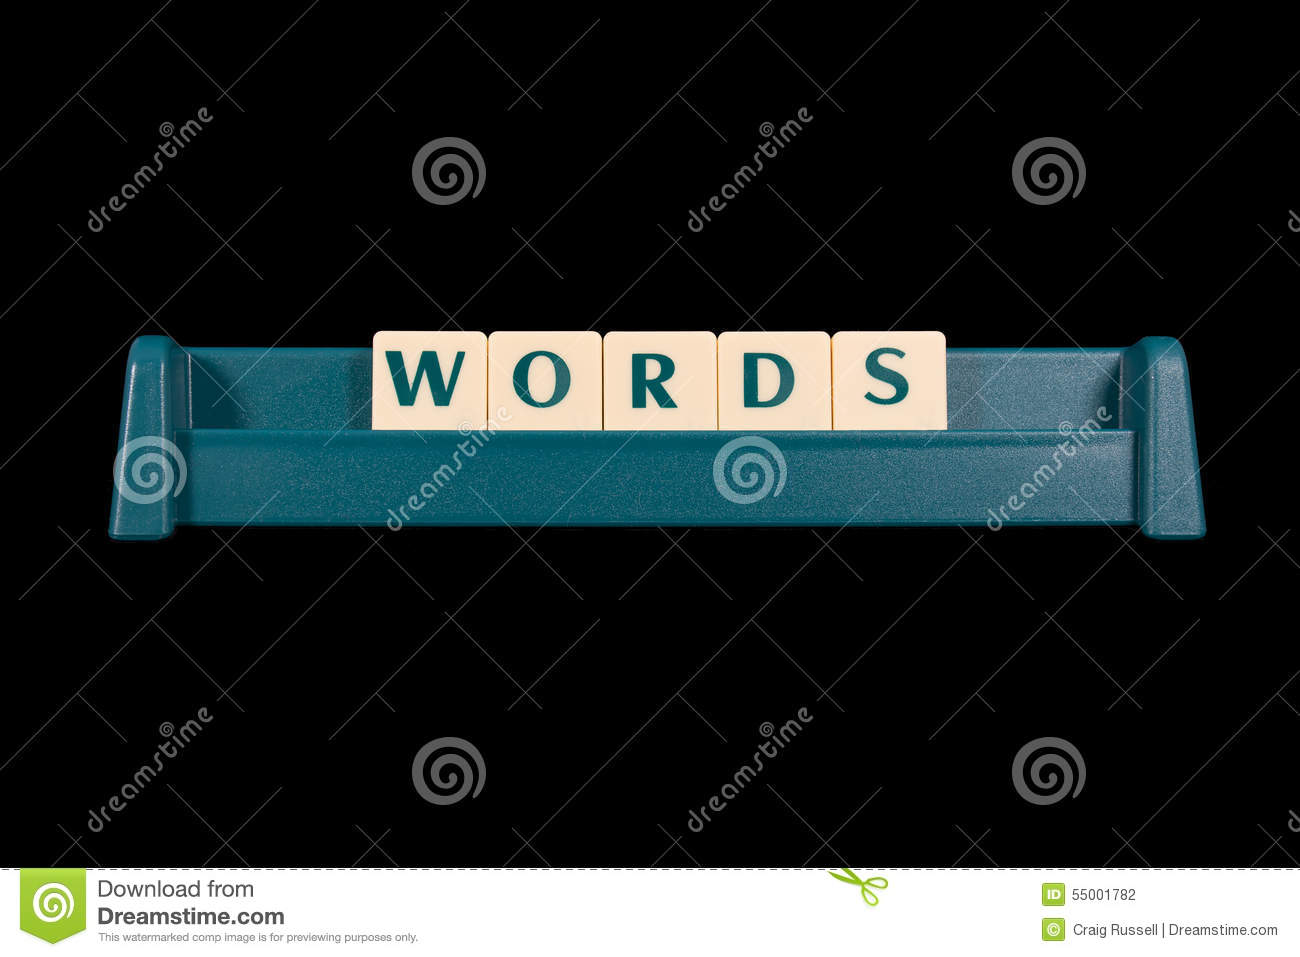 Word WORDS made from game piece letters 5SW7hkwo